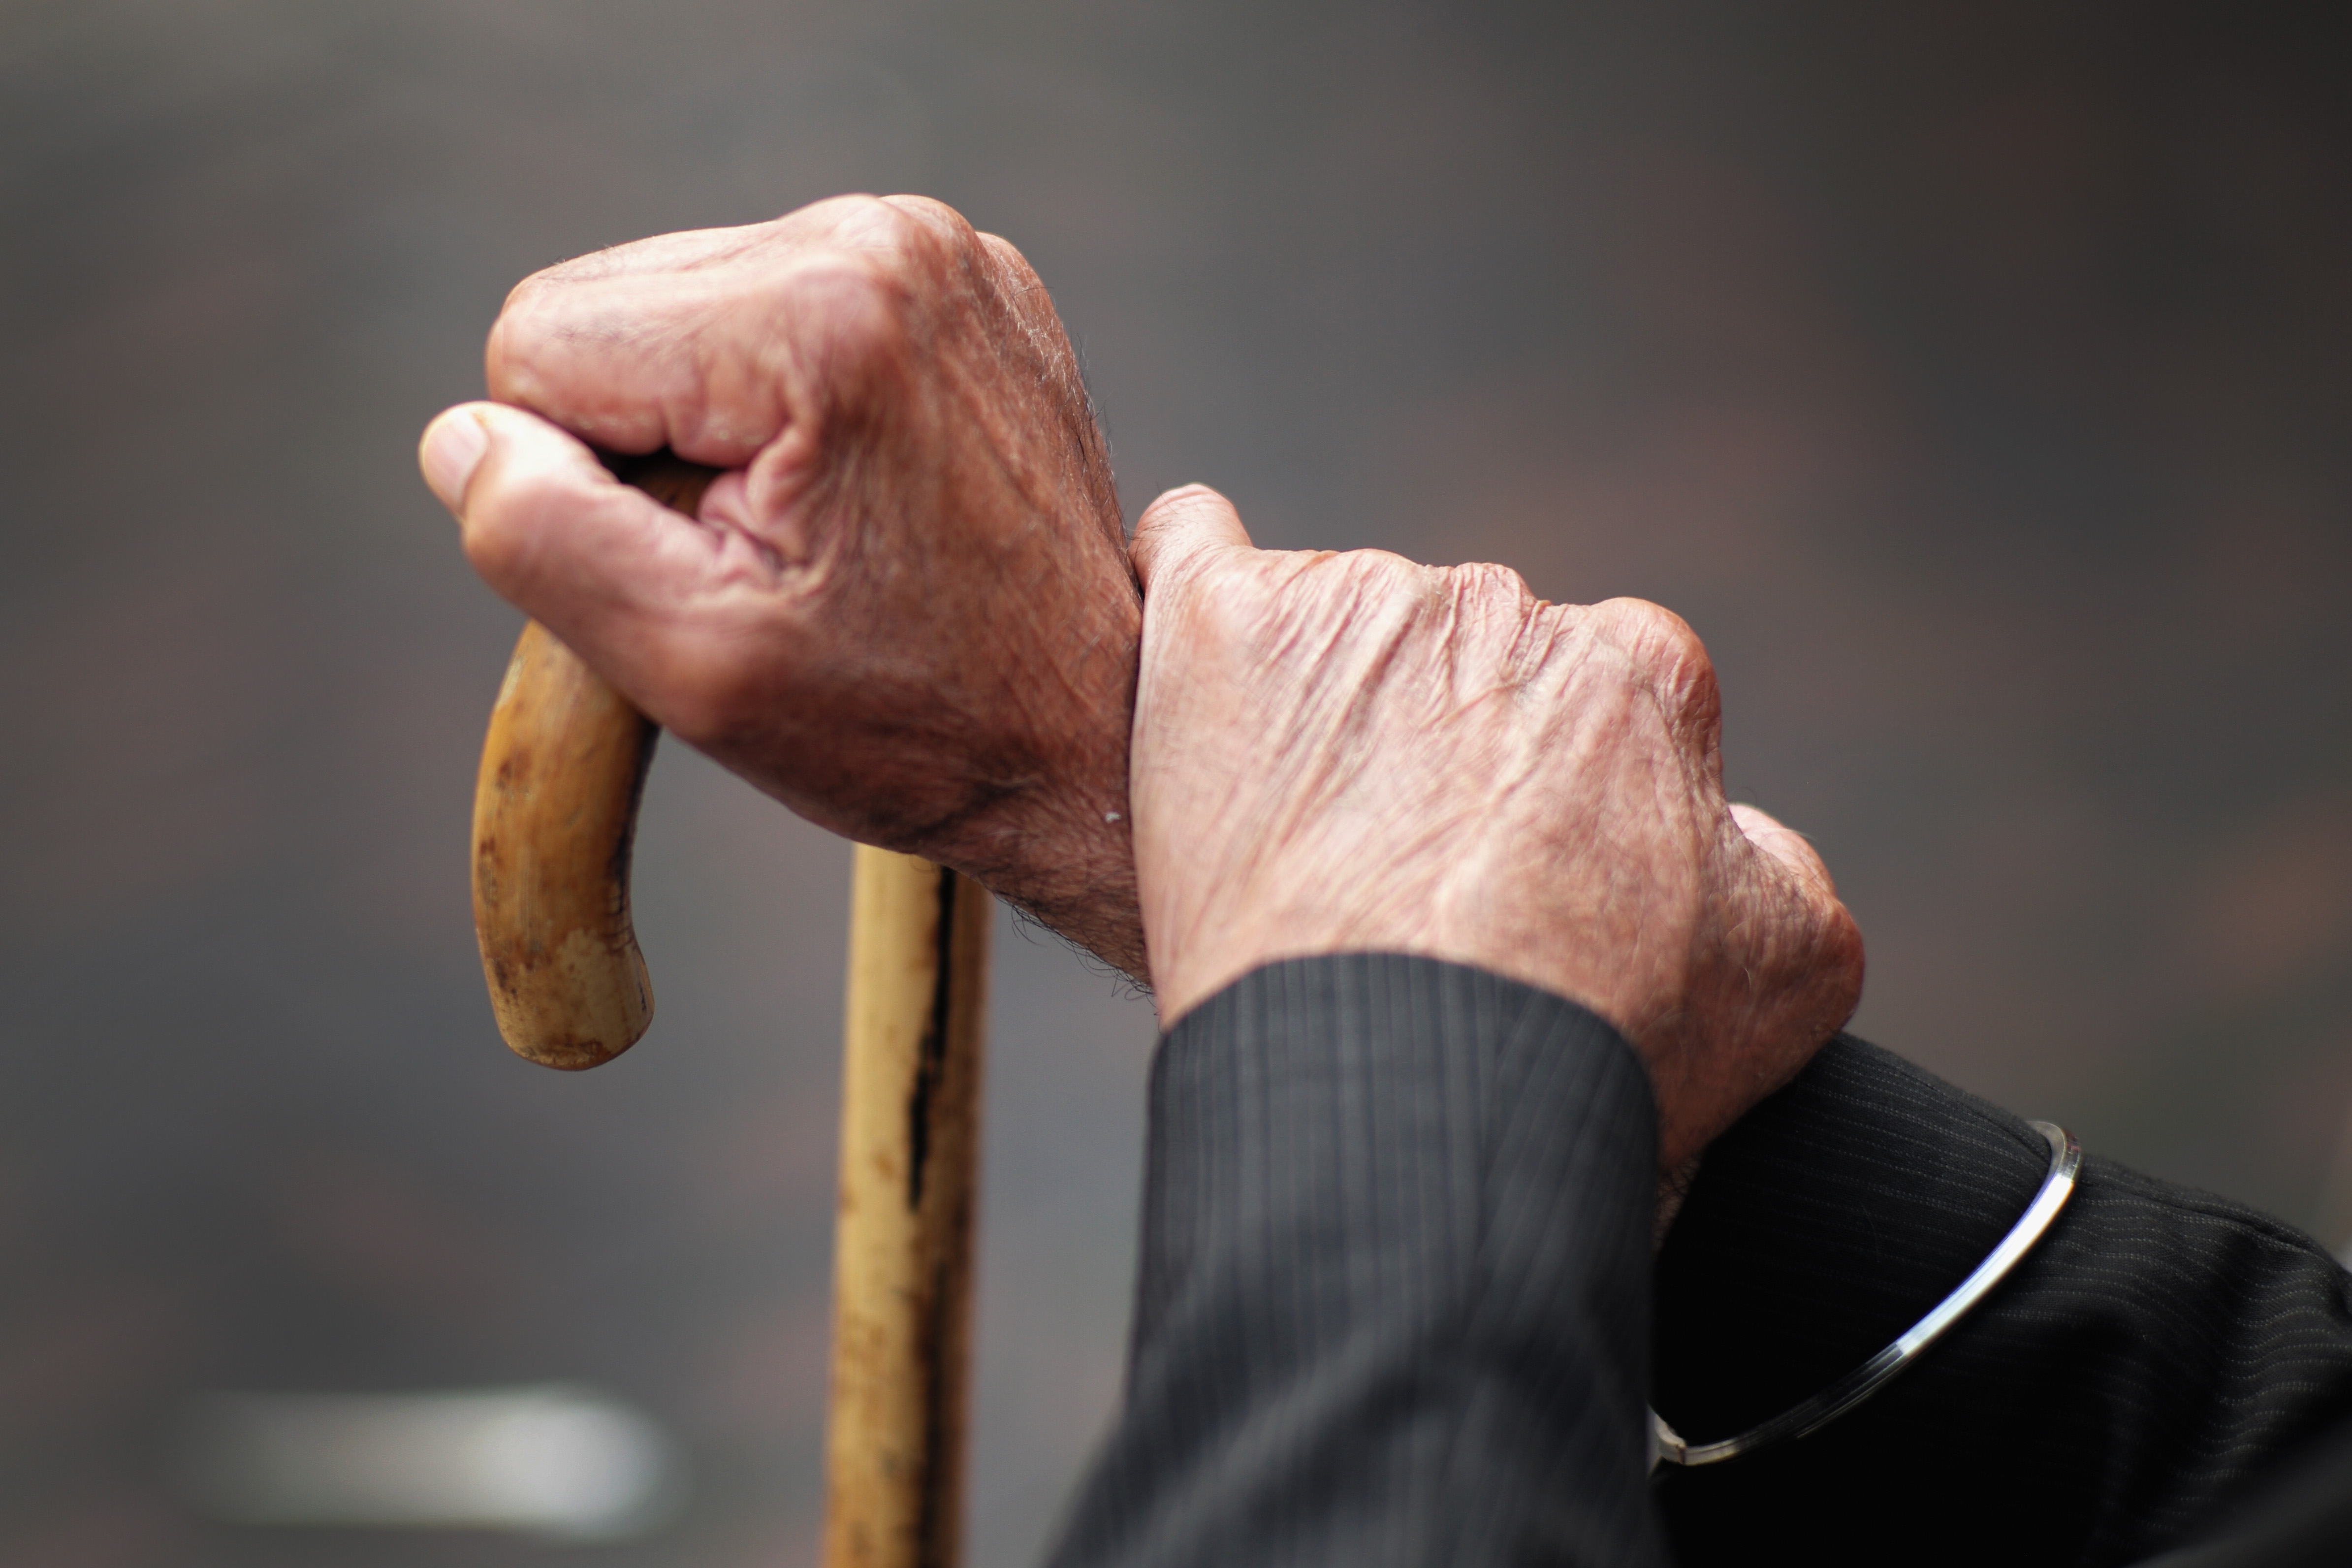 A pensioner holds his walking stick on September 8, 2014 in Walsall, England.